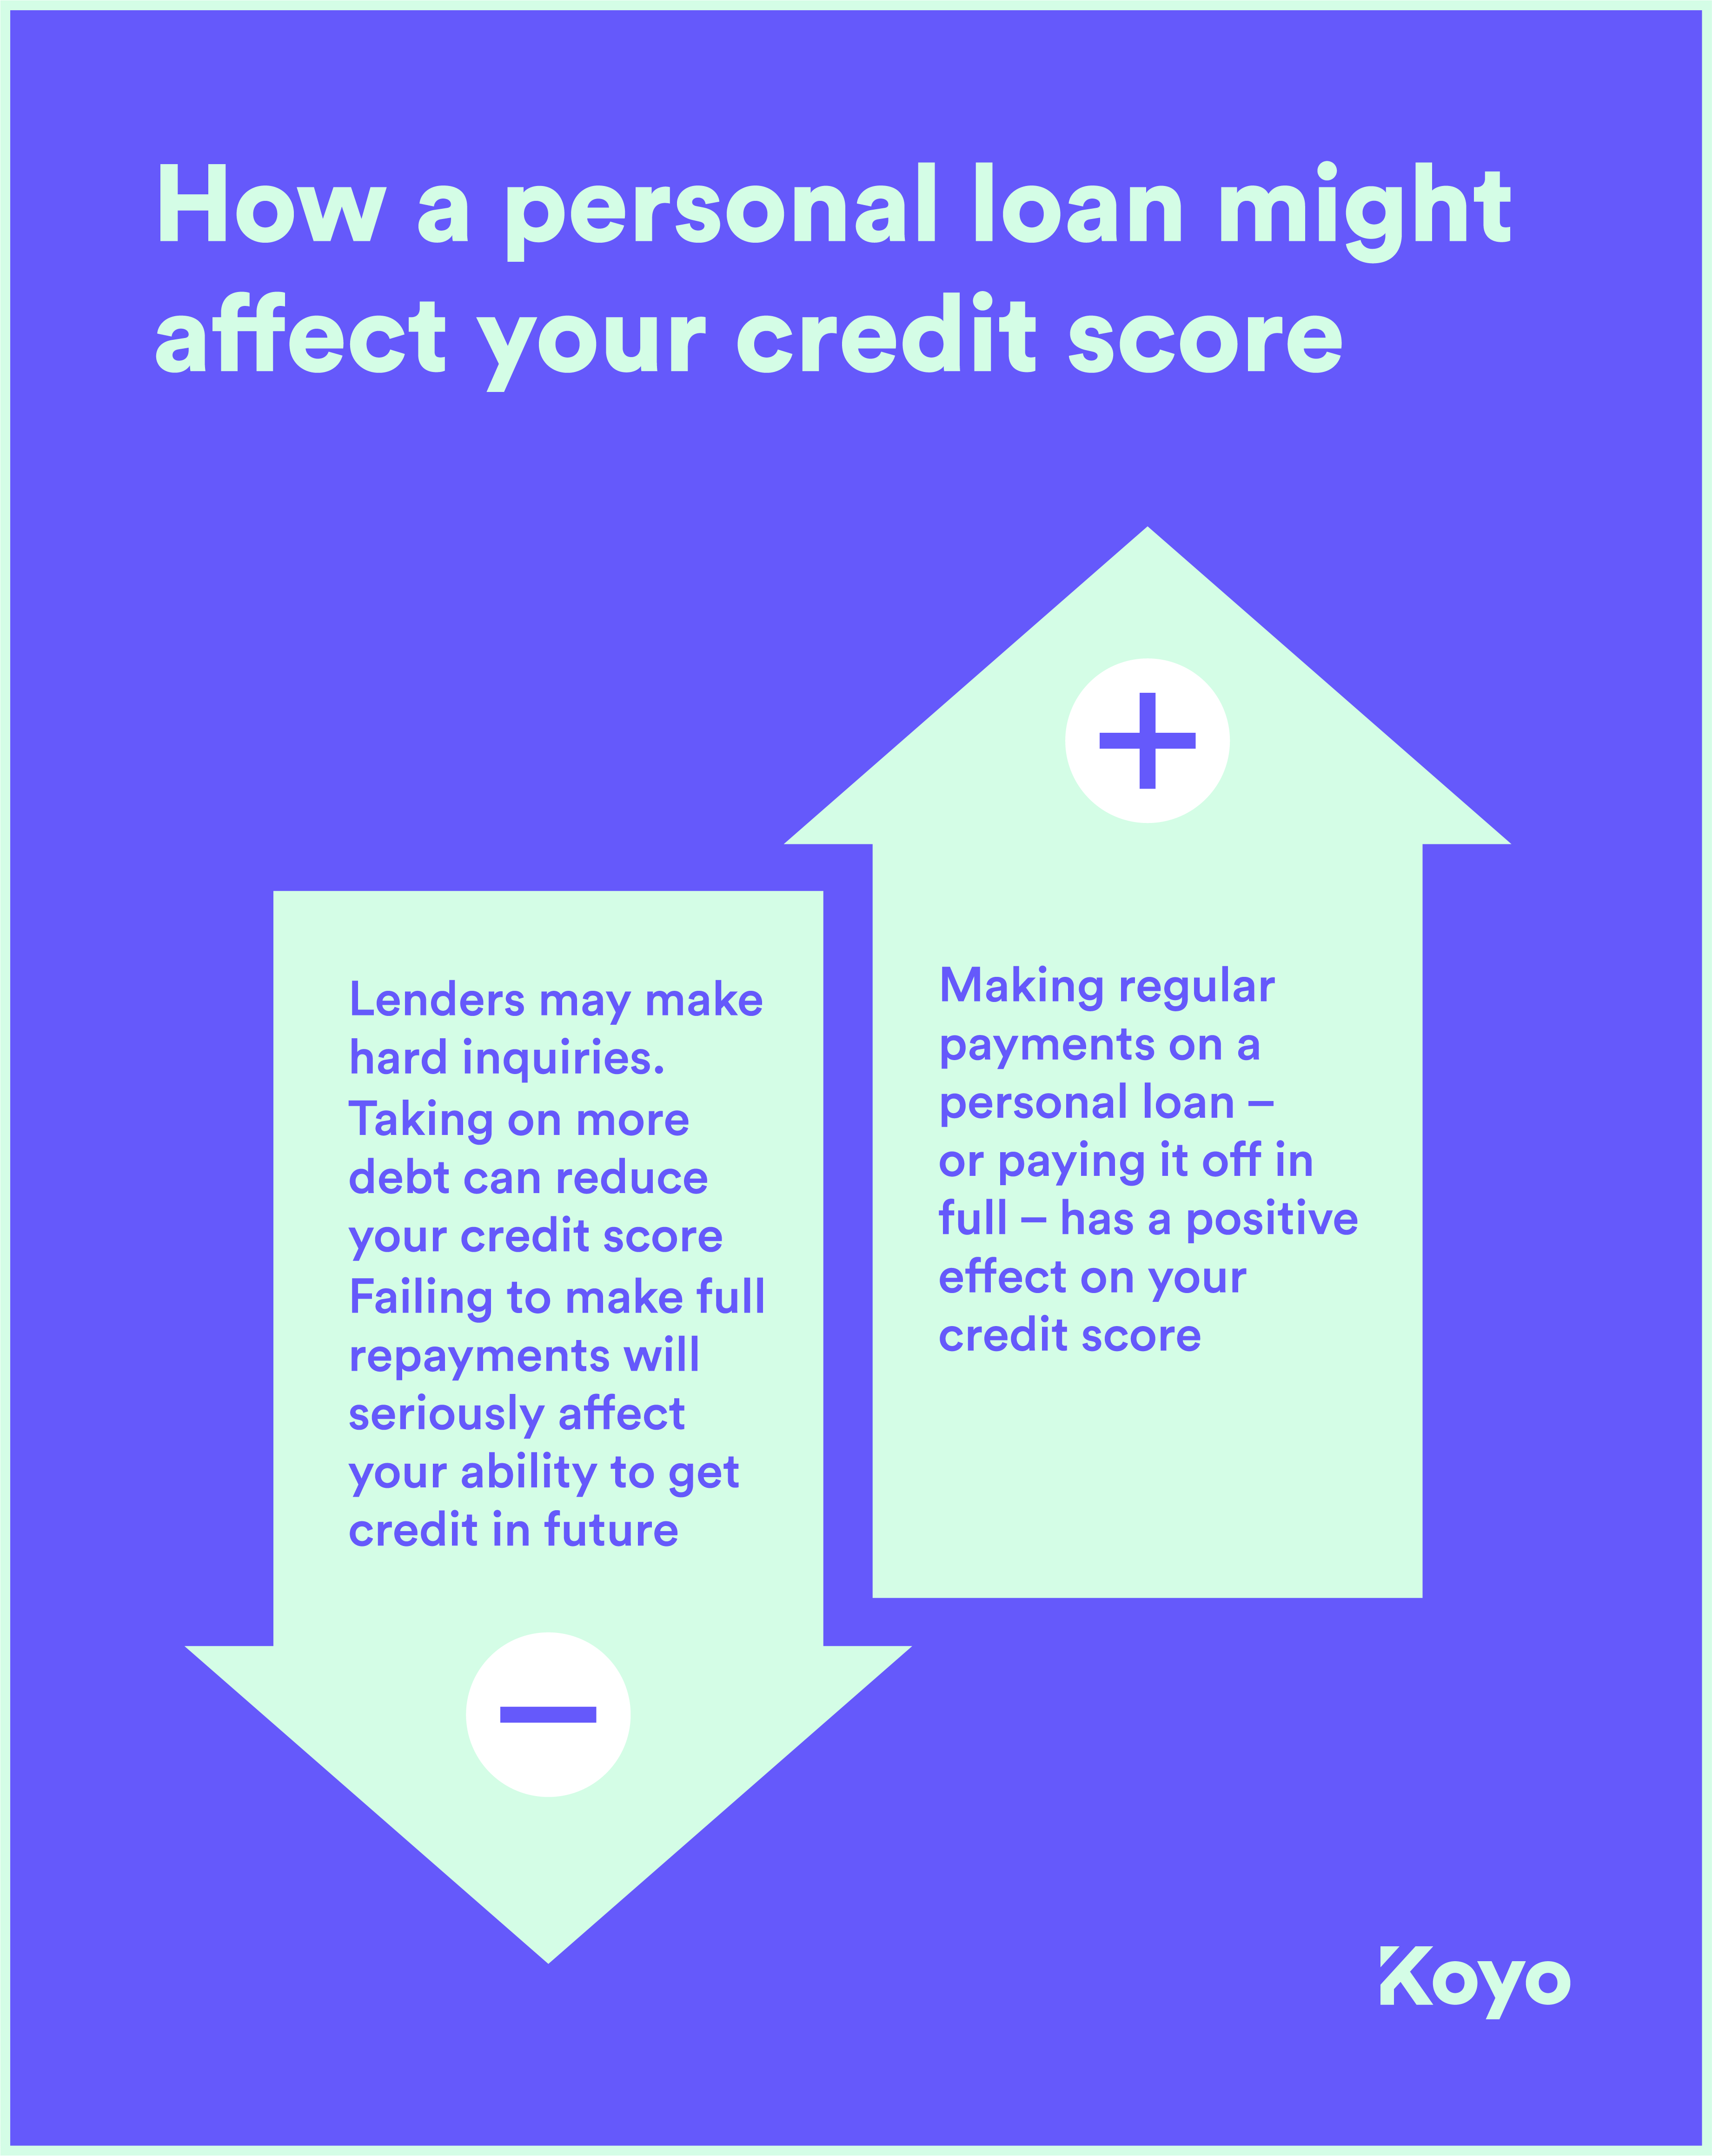 an image showing how actions associated with taking out a personal loan affect your credit score